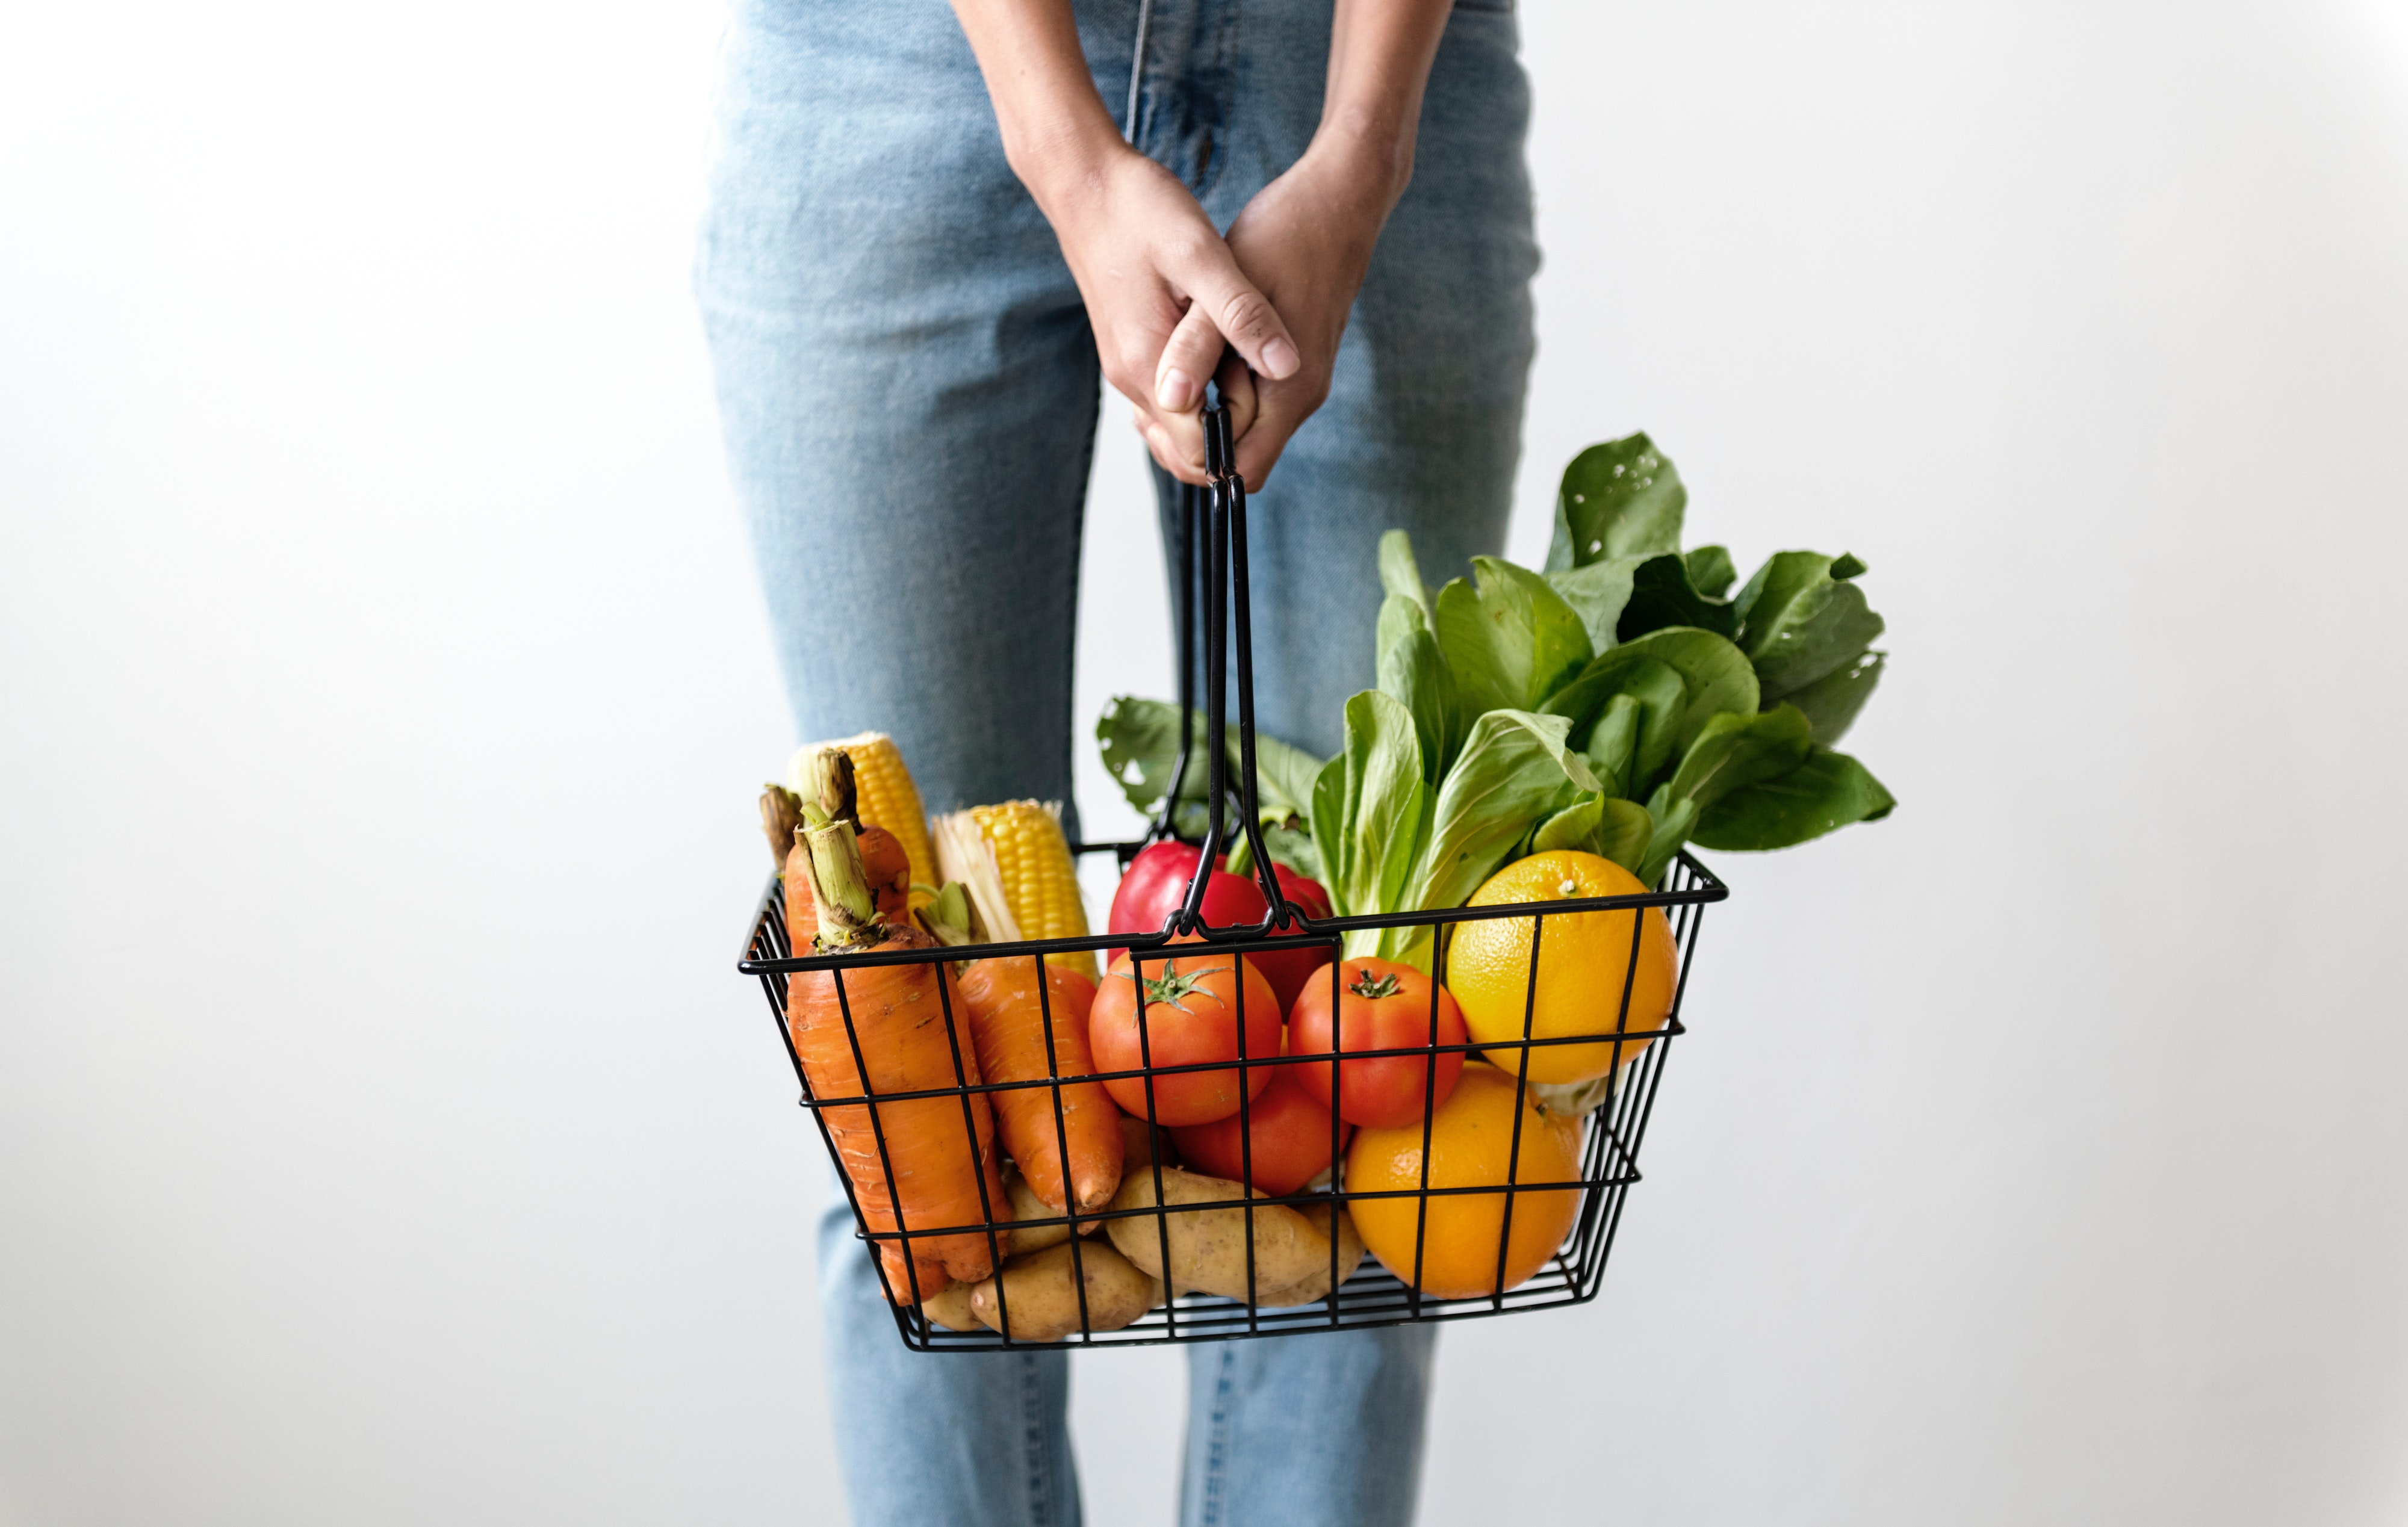 Female holding grocery basket of fruits and vegetables